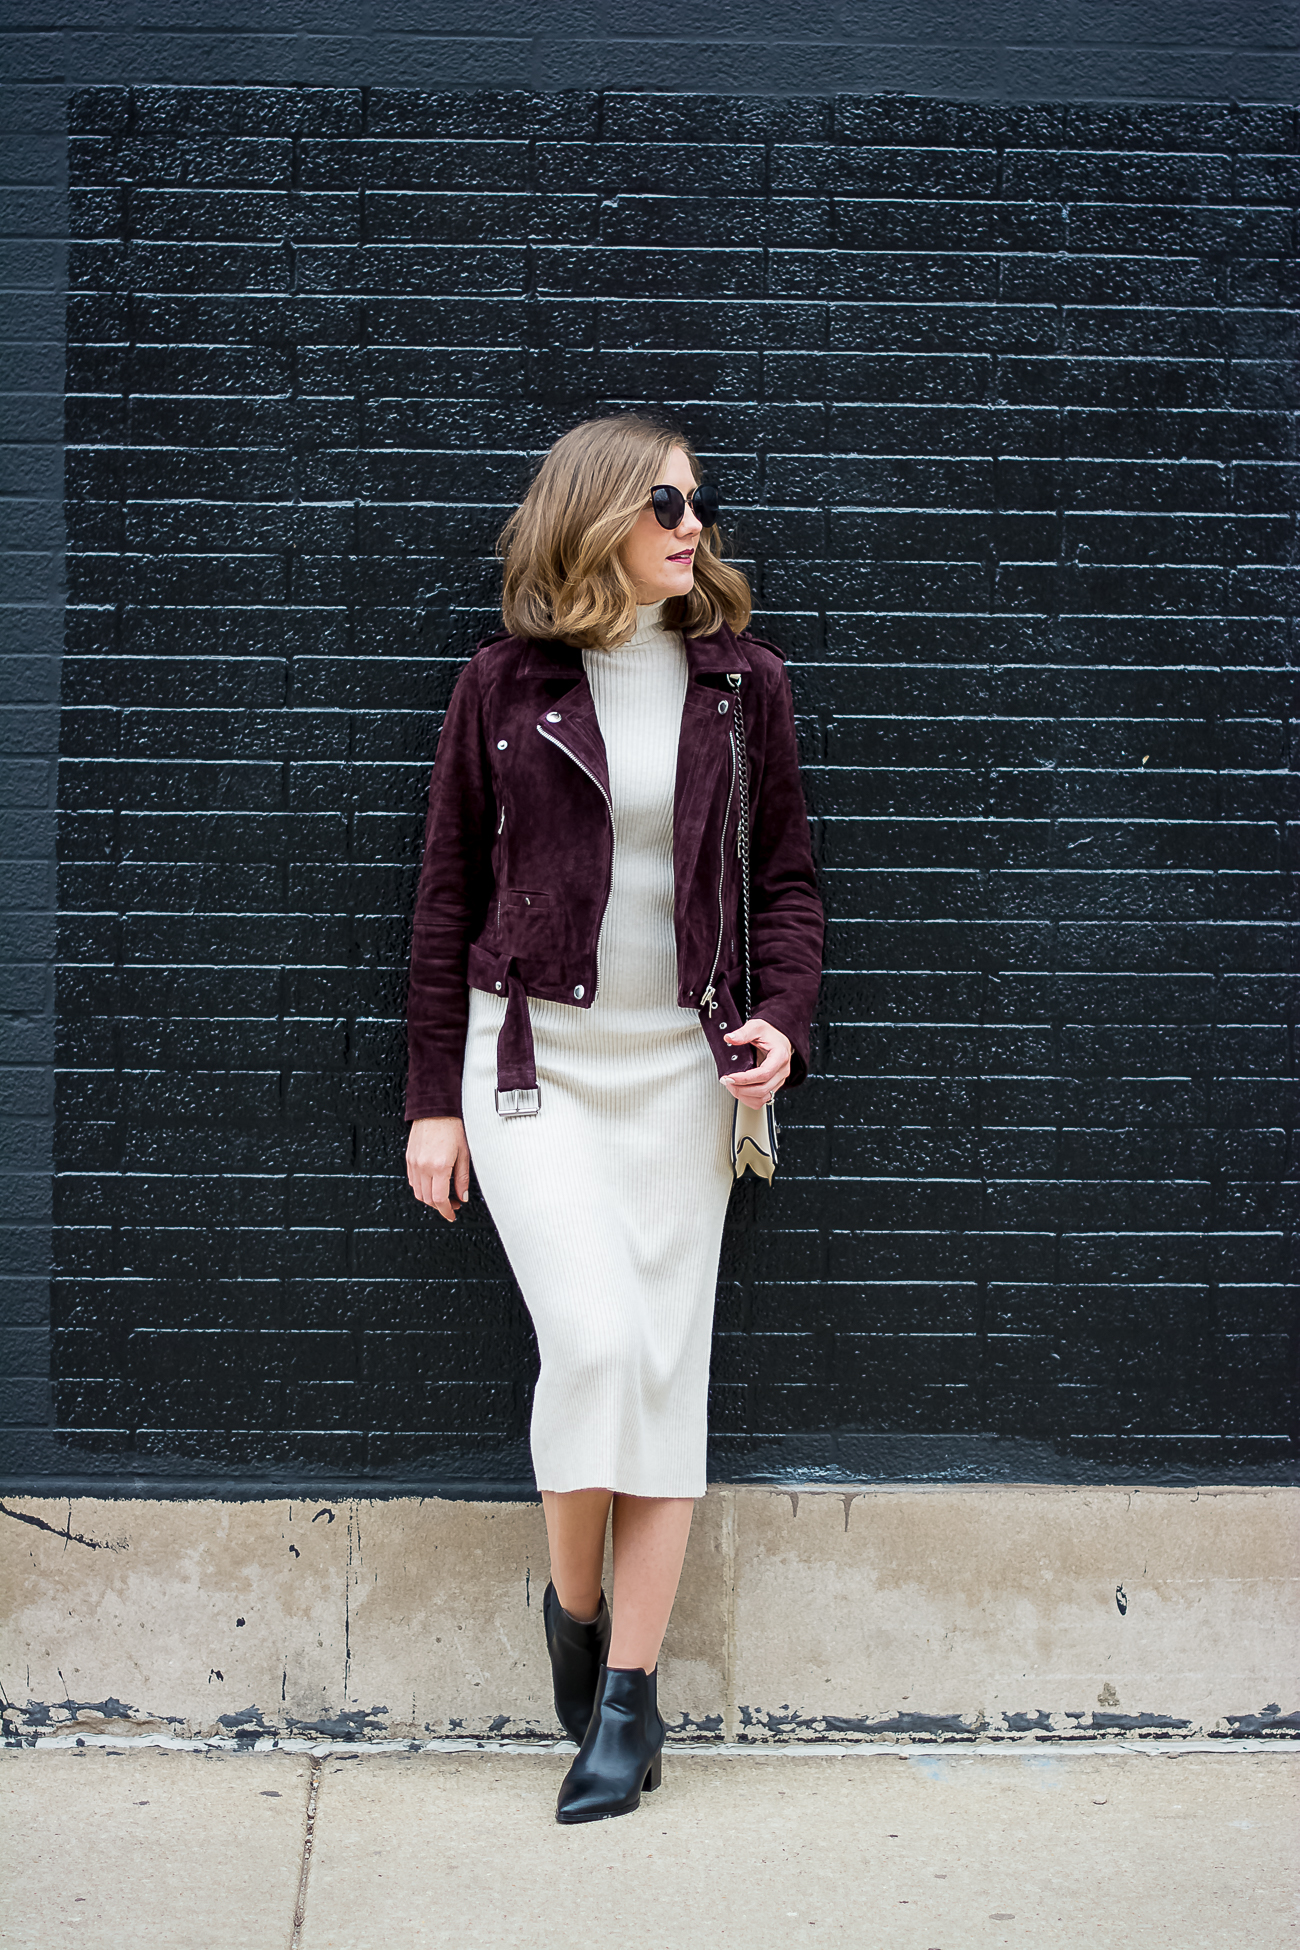 Edgy Spring Layers A Bodycon Midi Dress And A Suede Moto